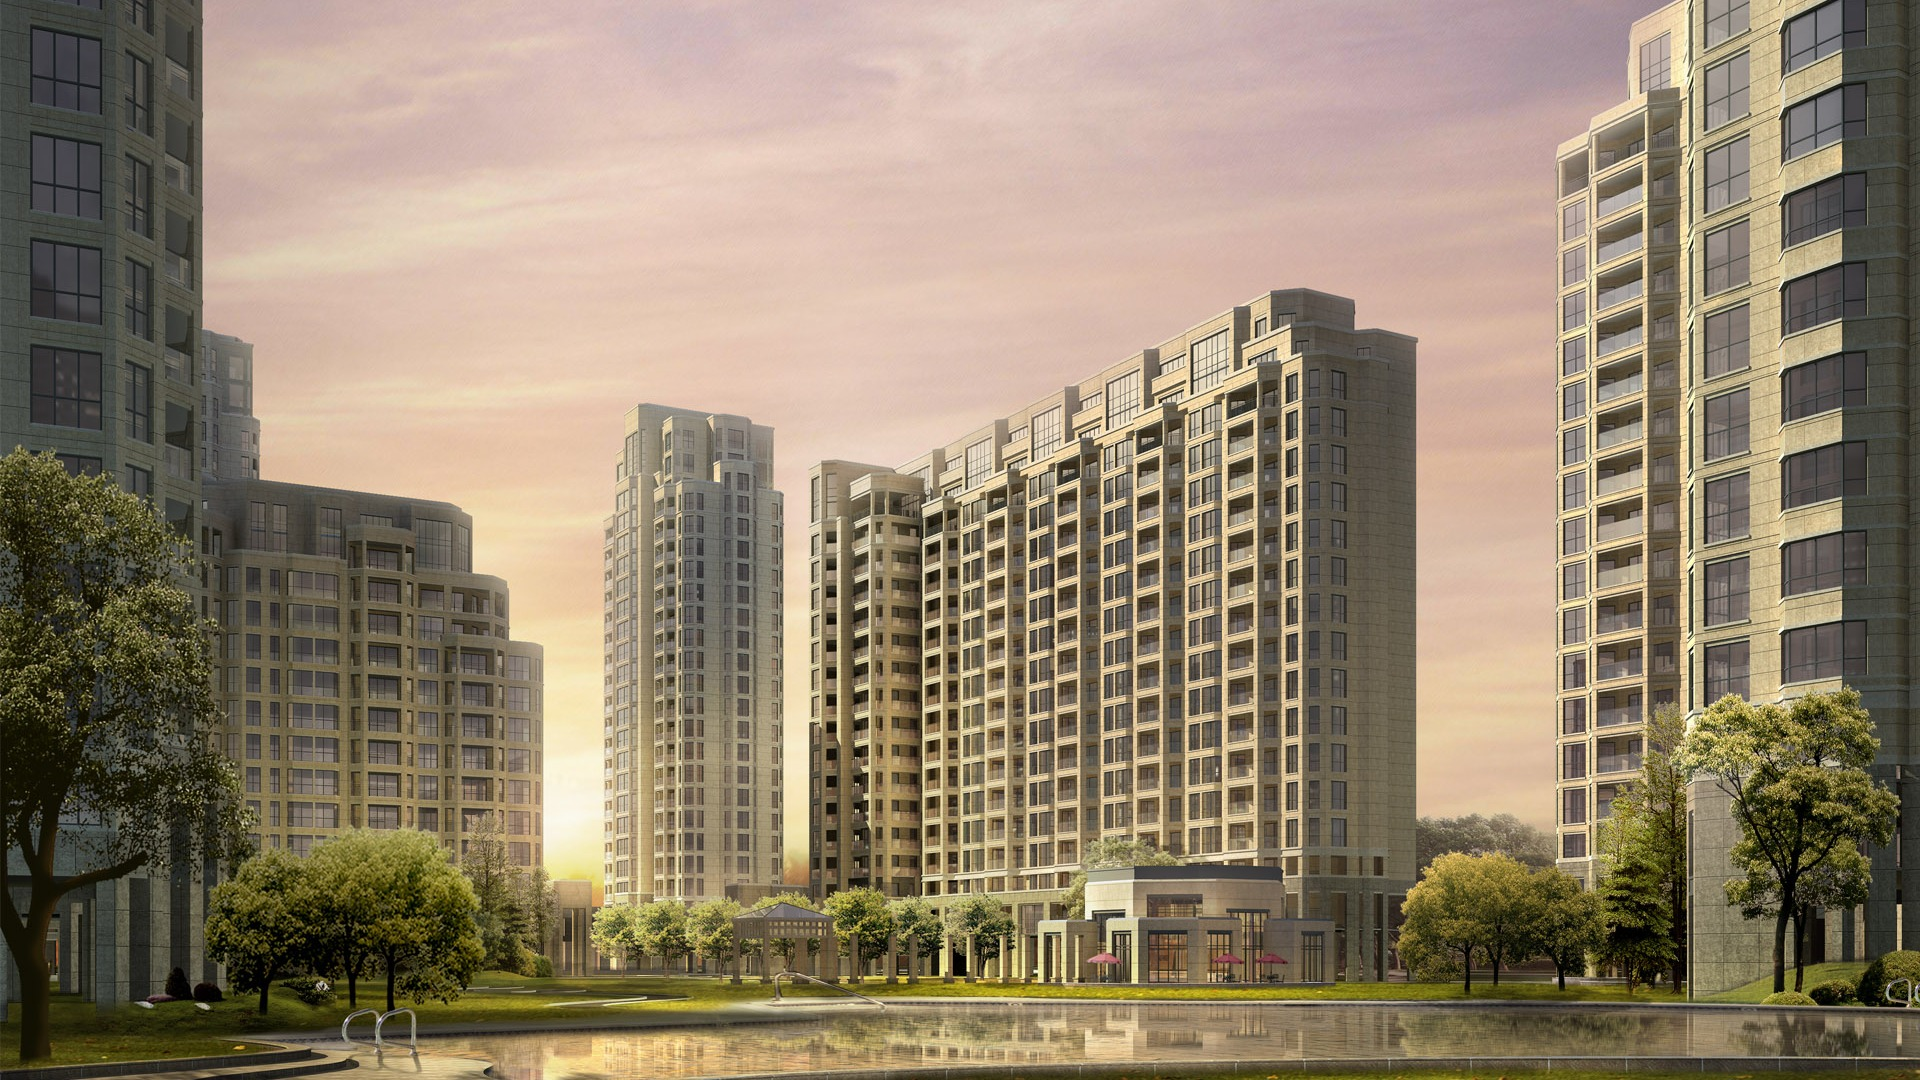 3d Architectural Rendering Of Residential Buildings 19